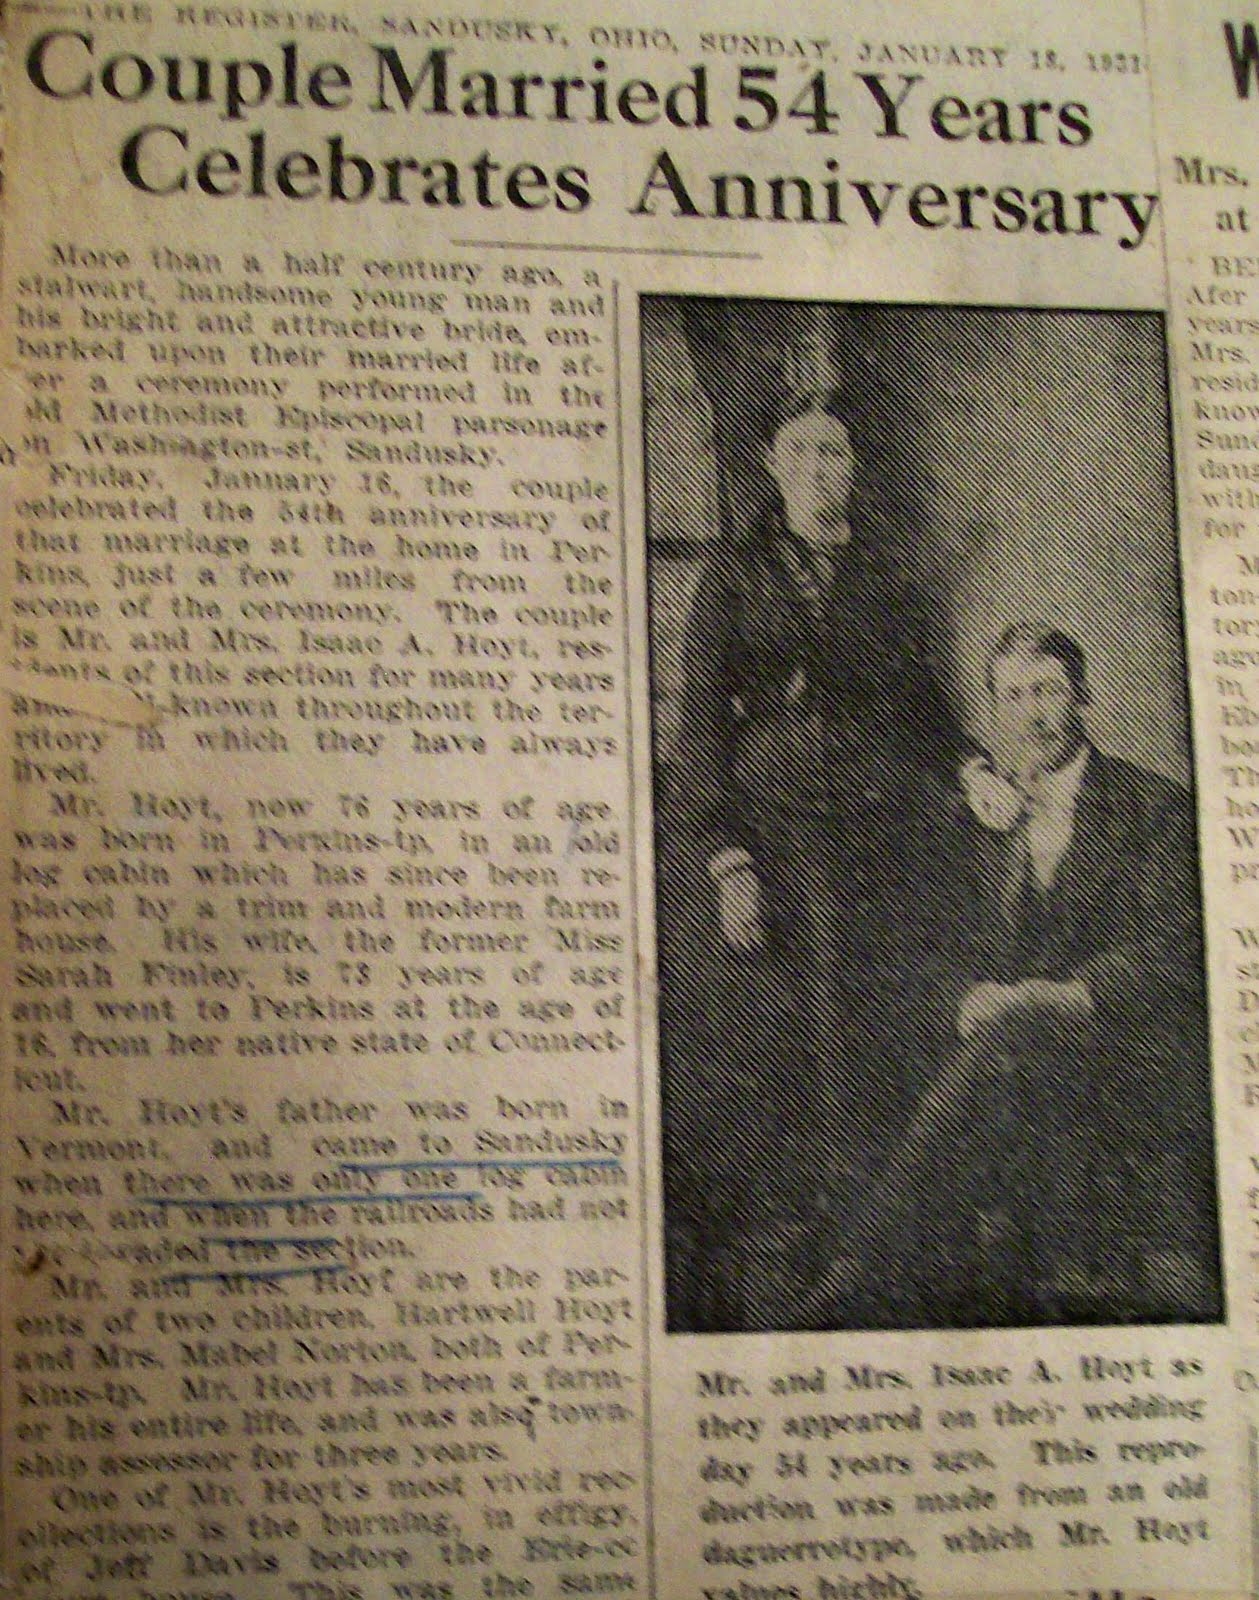 How to scrapbook with newspaper clippings - In The Second Half Of The Scrapbook Are Newspaper Clippings Of Events That Were Important To Grandma Ada Below Is An Article About Distant Relatives Who